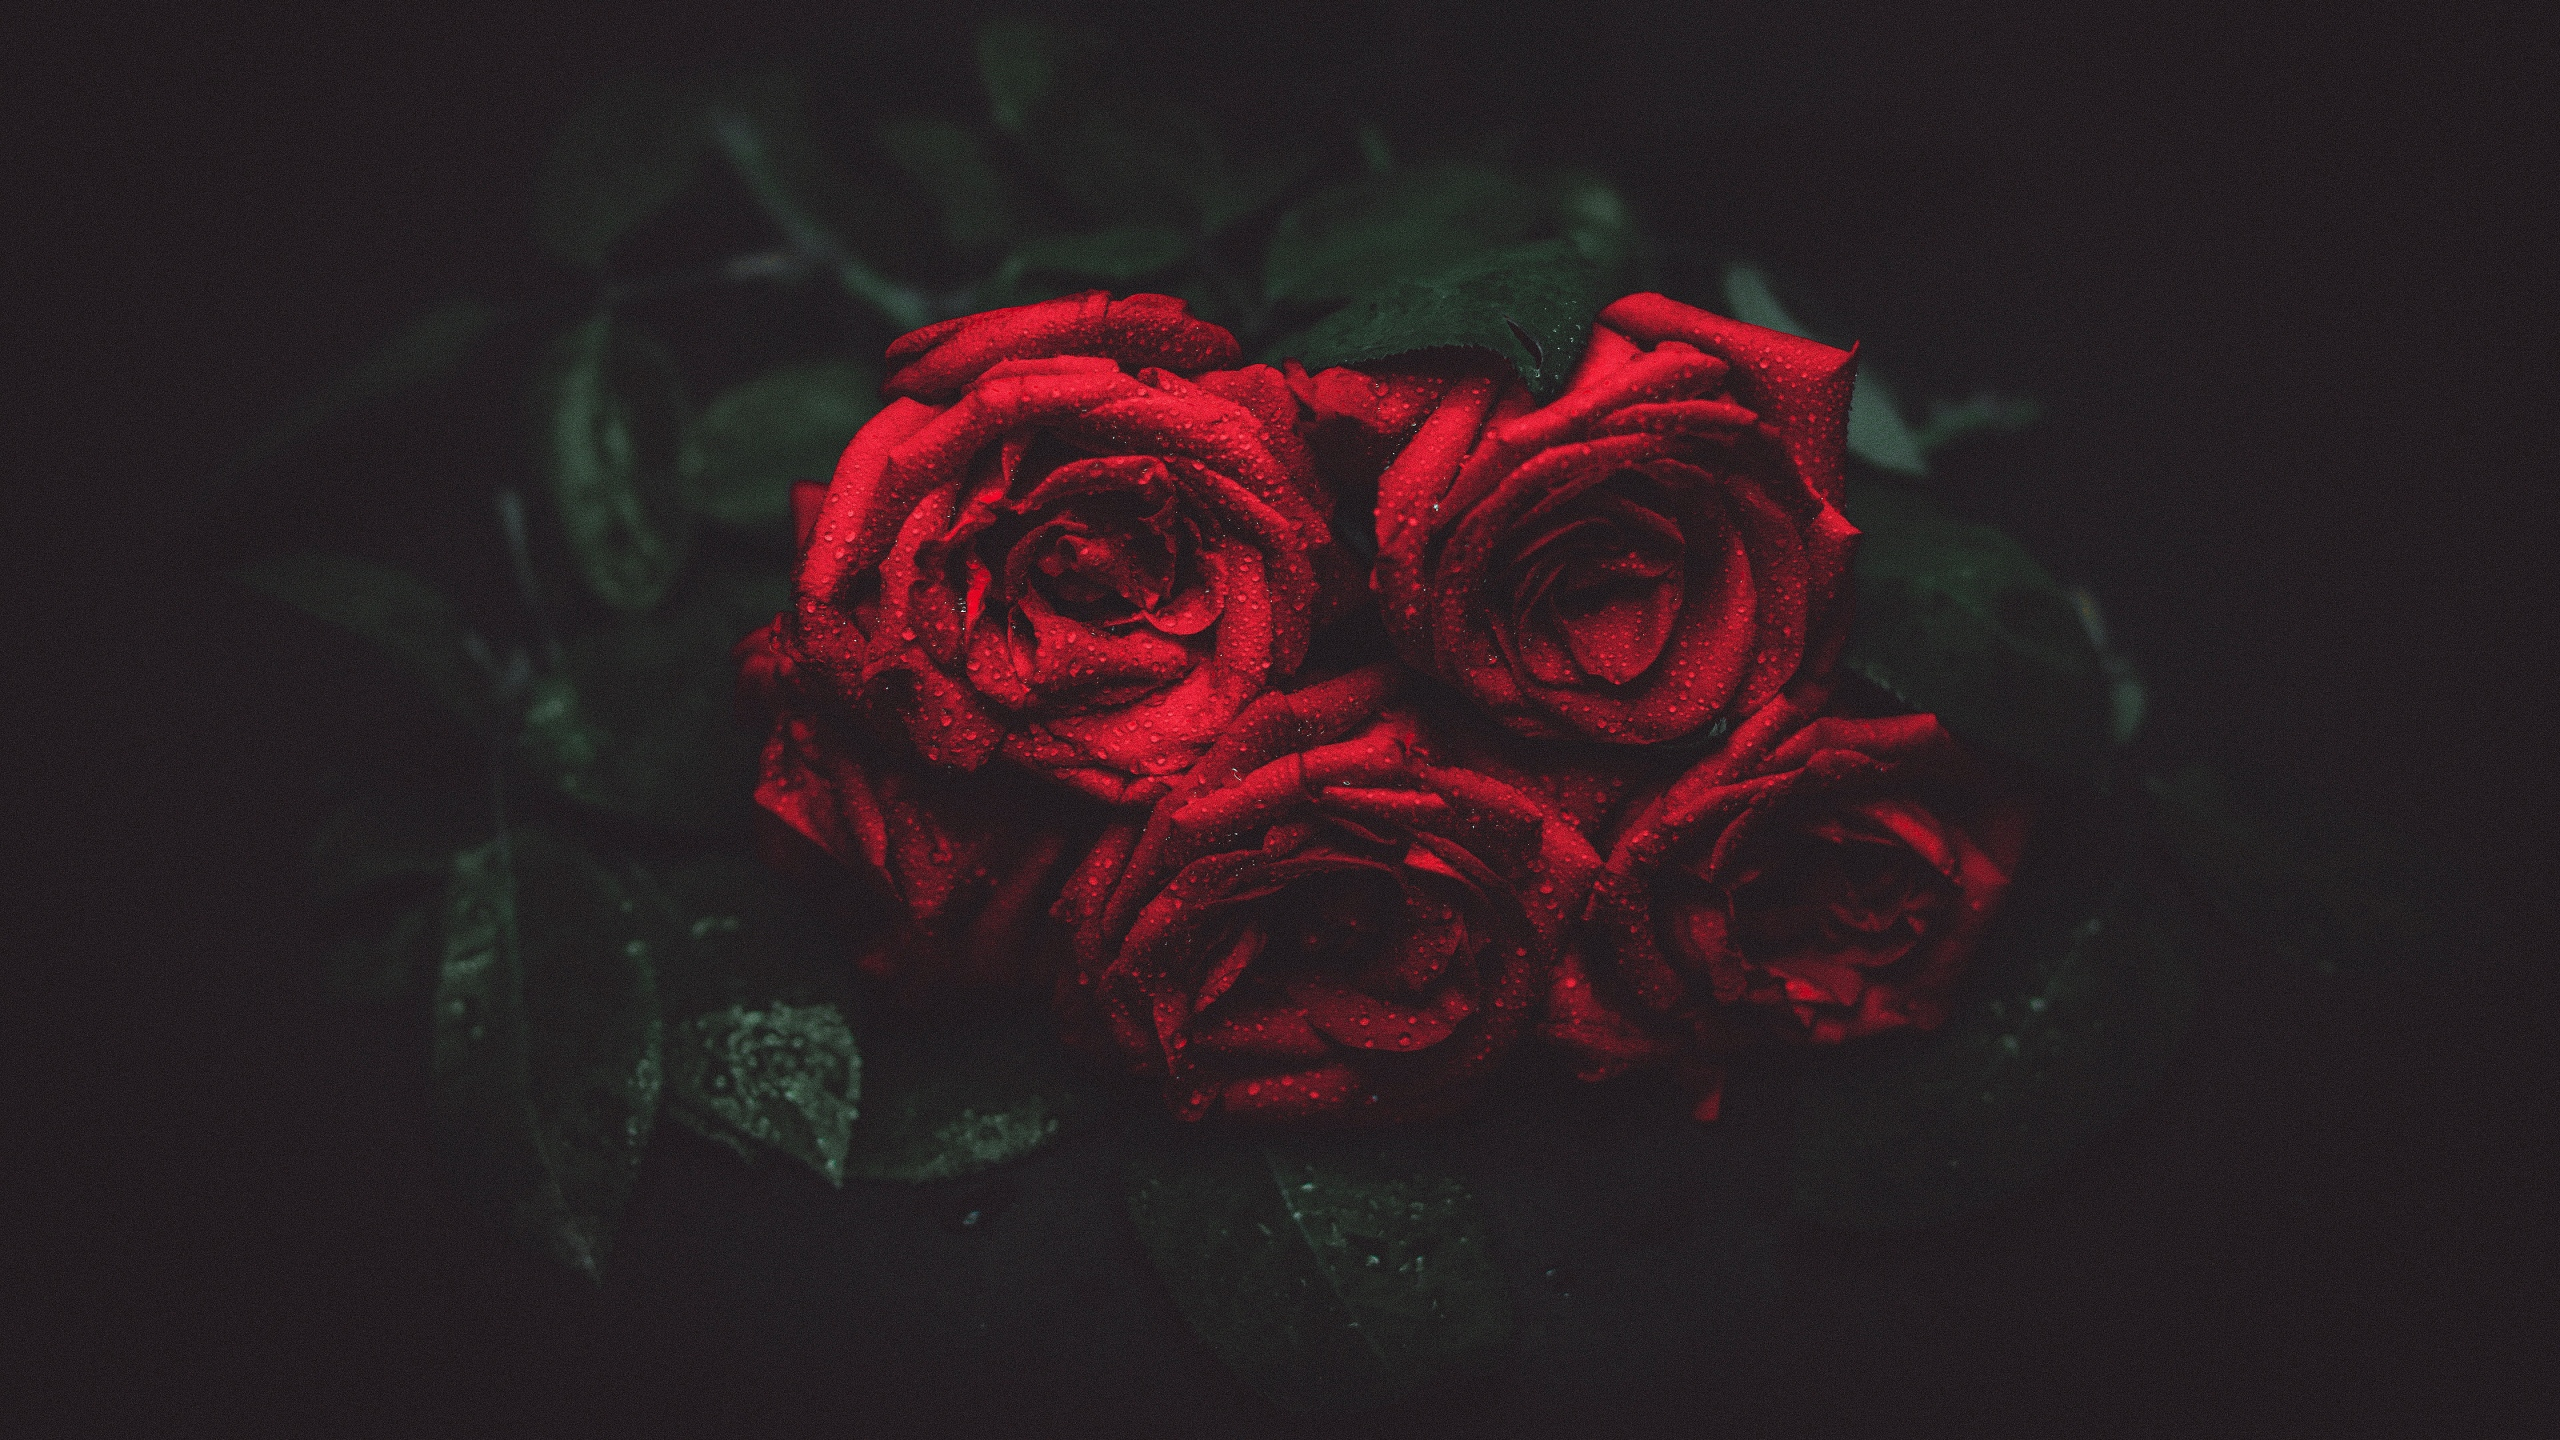 2560x1440 roses, drops, buds YouTube Channel Cover